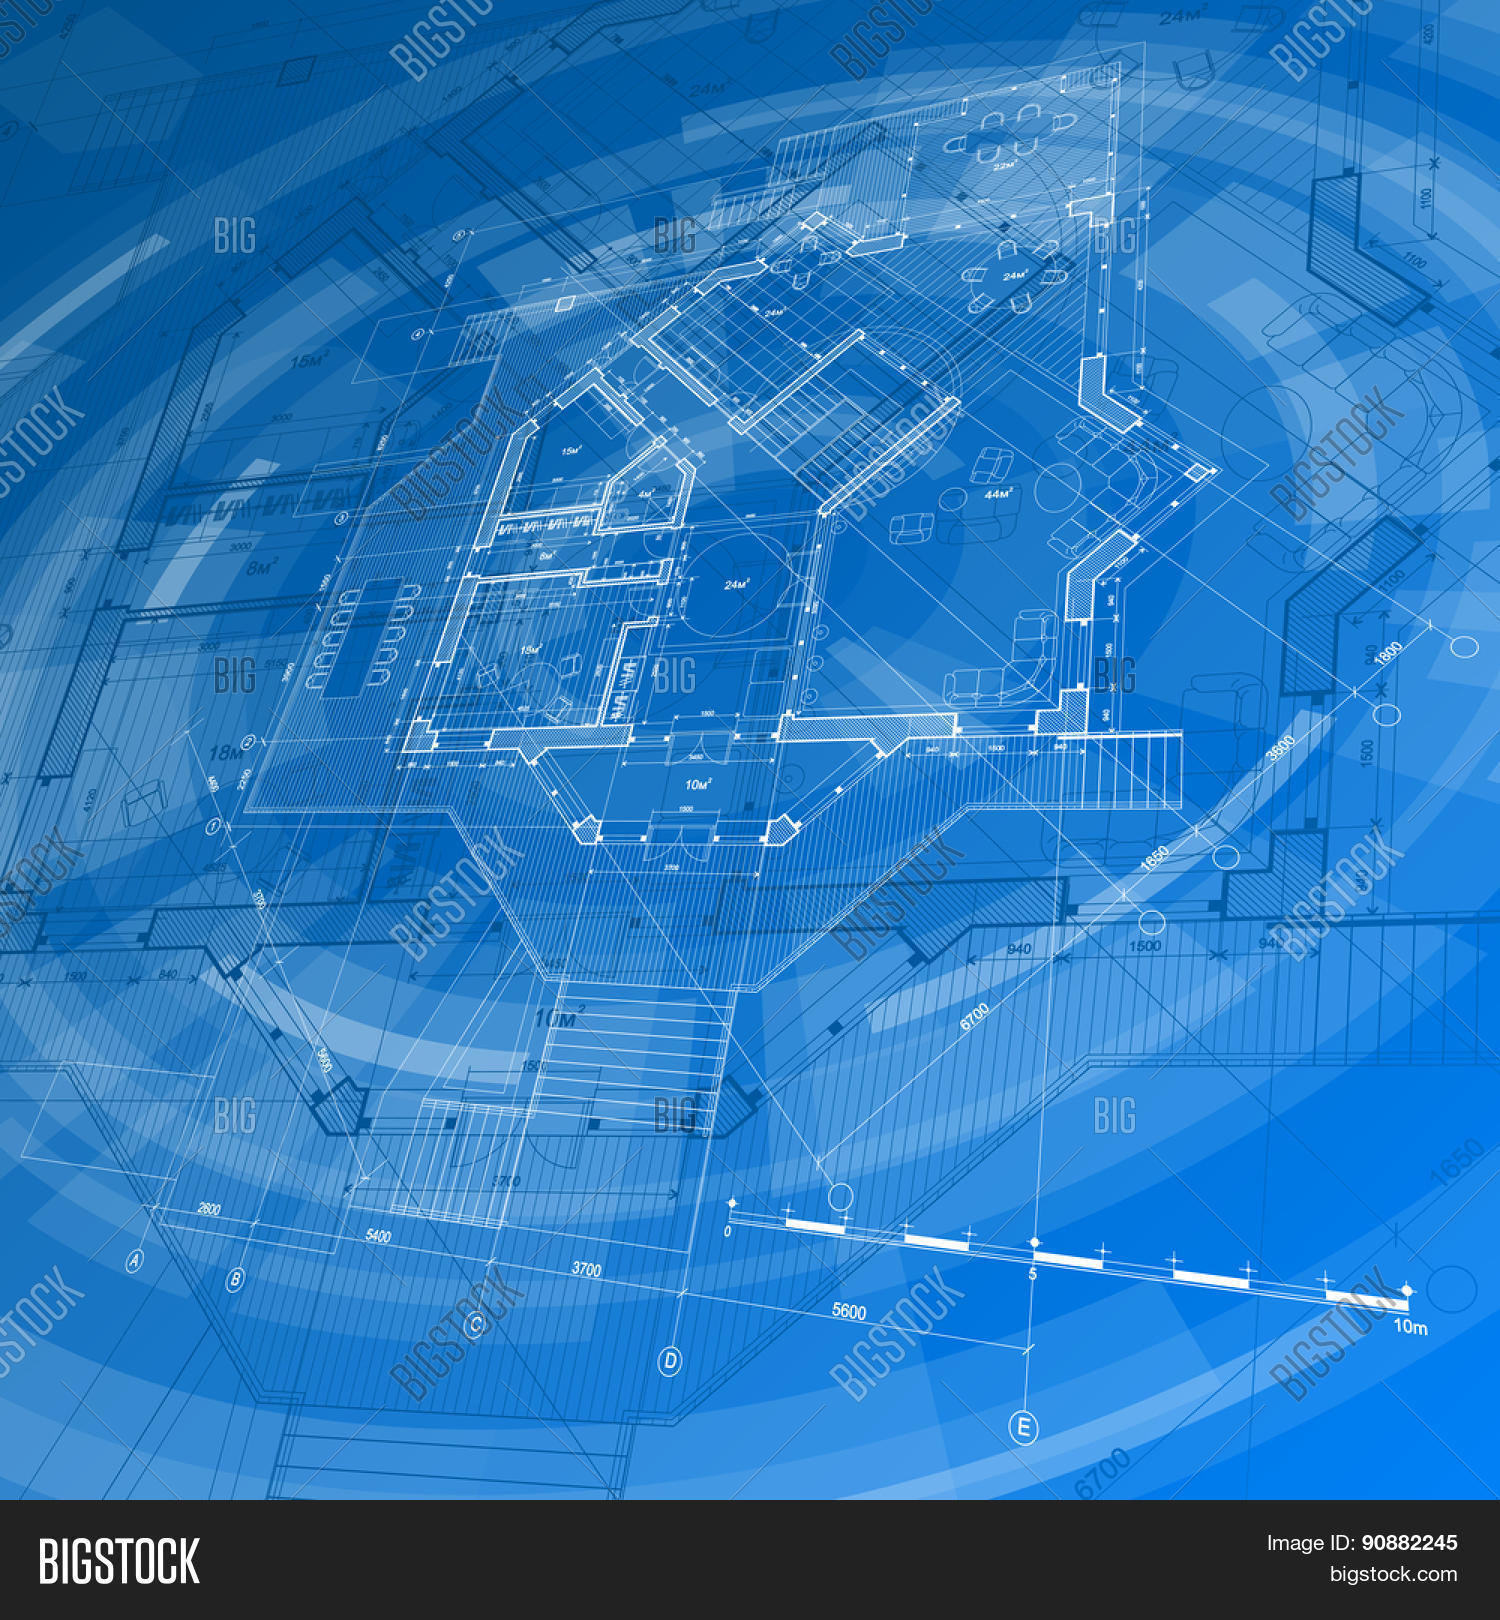 Vector y foto architecture design blueprint bigstock architecture design blueprint house plan blue technology radial background vector illustration malvernweather Image collections